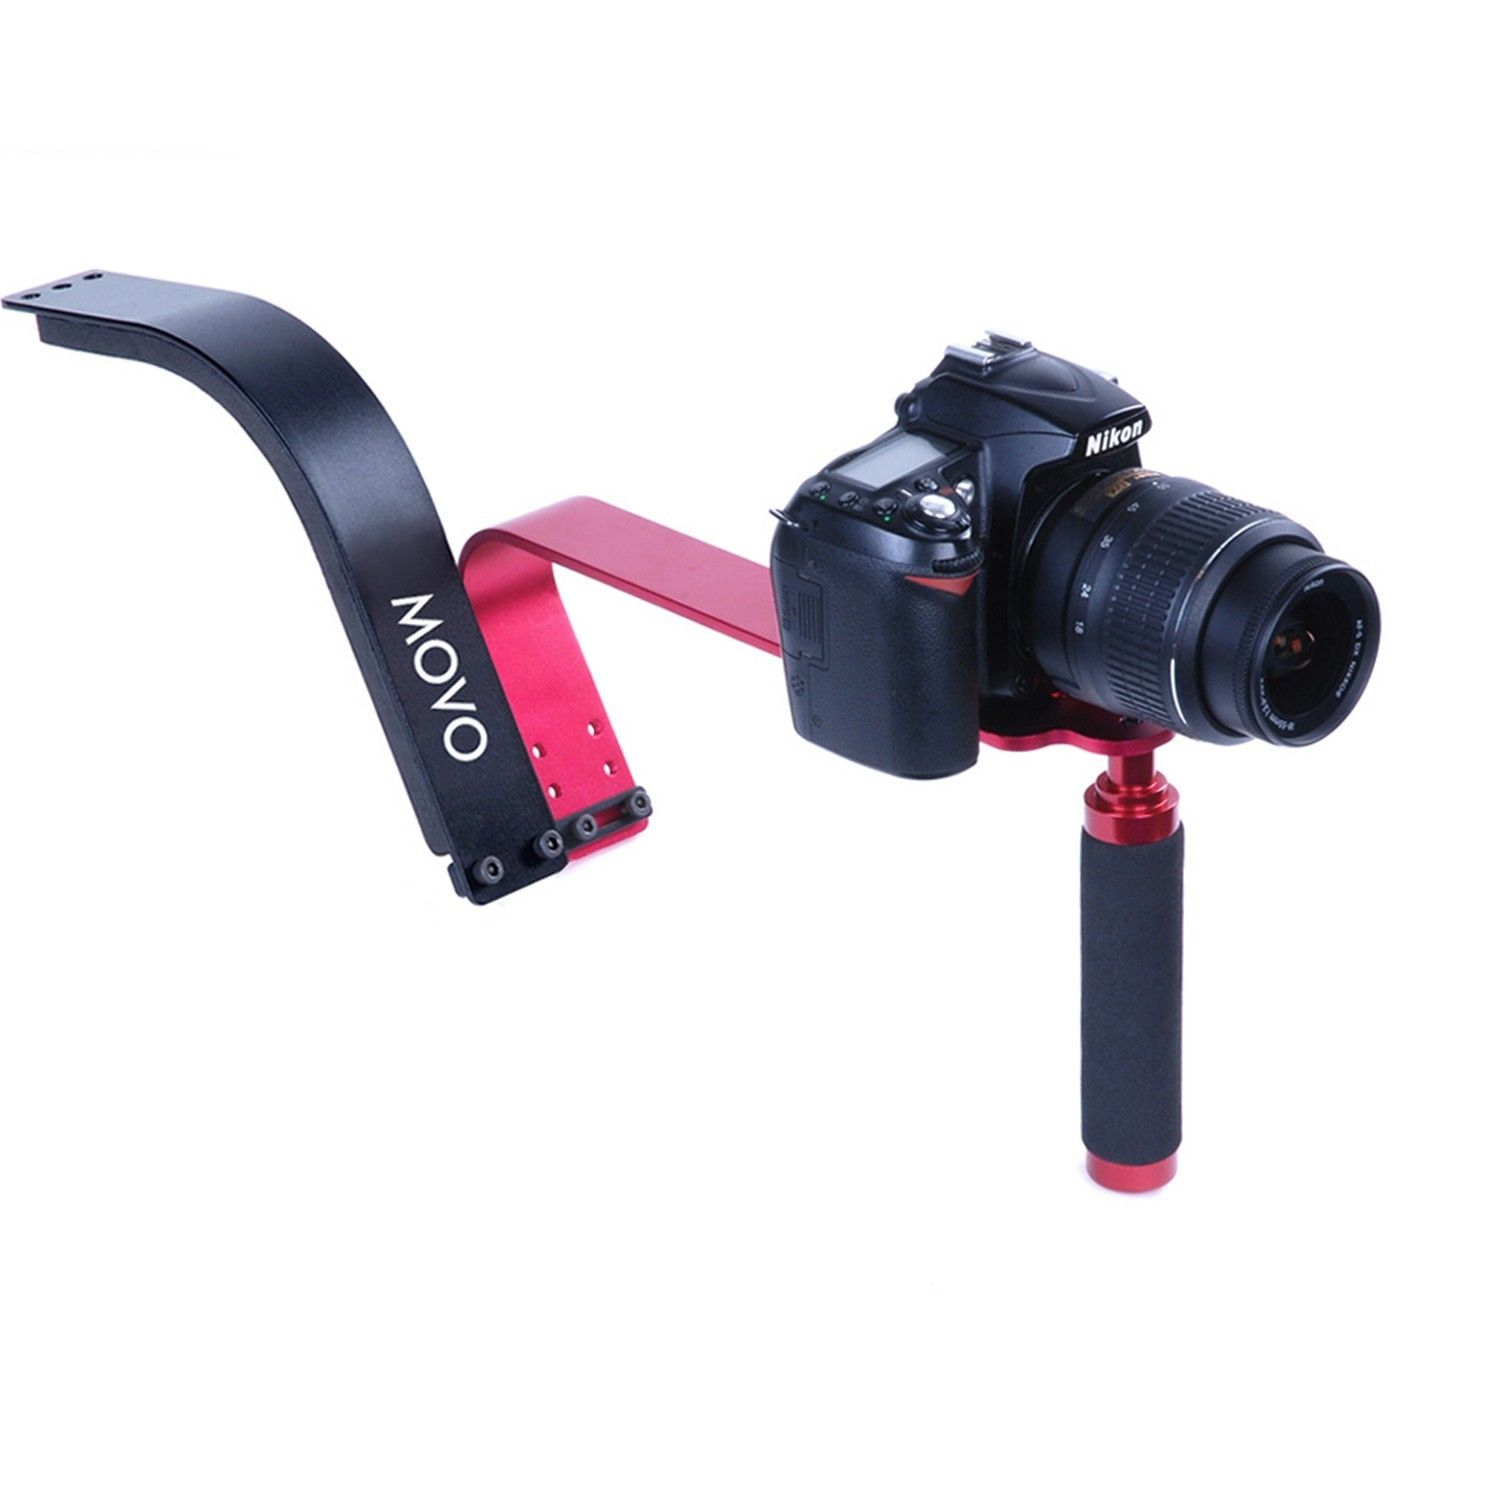 Movo Photo SG100 Video Shoulder Support Rig for DSLR Cameras and Camcorders